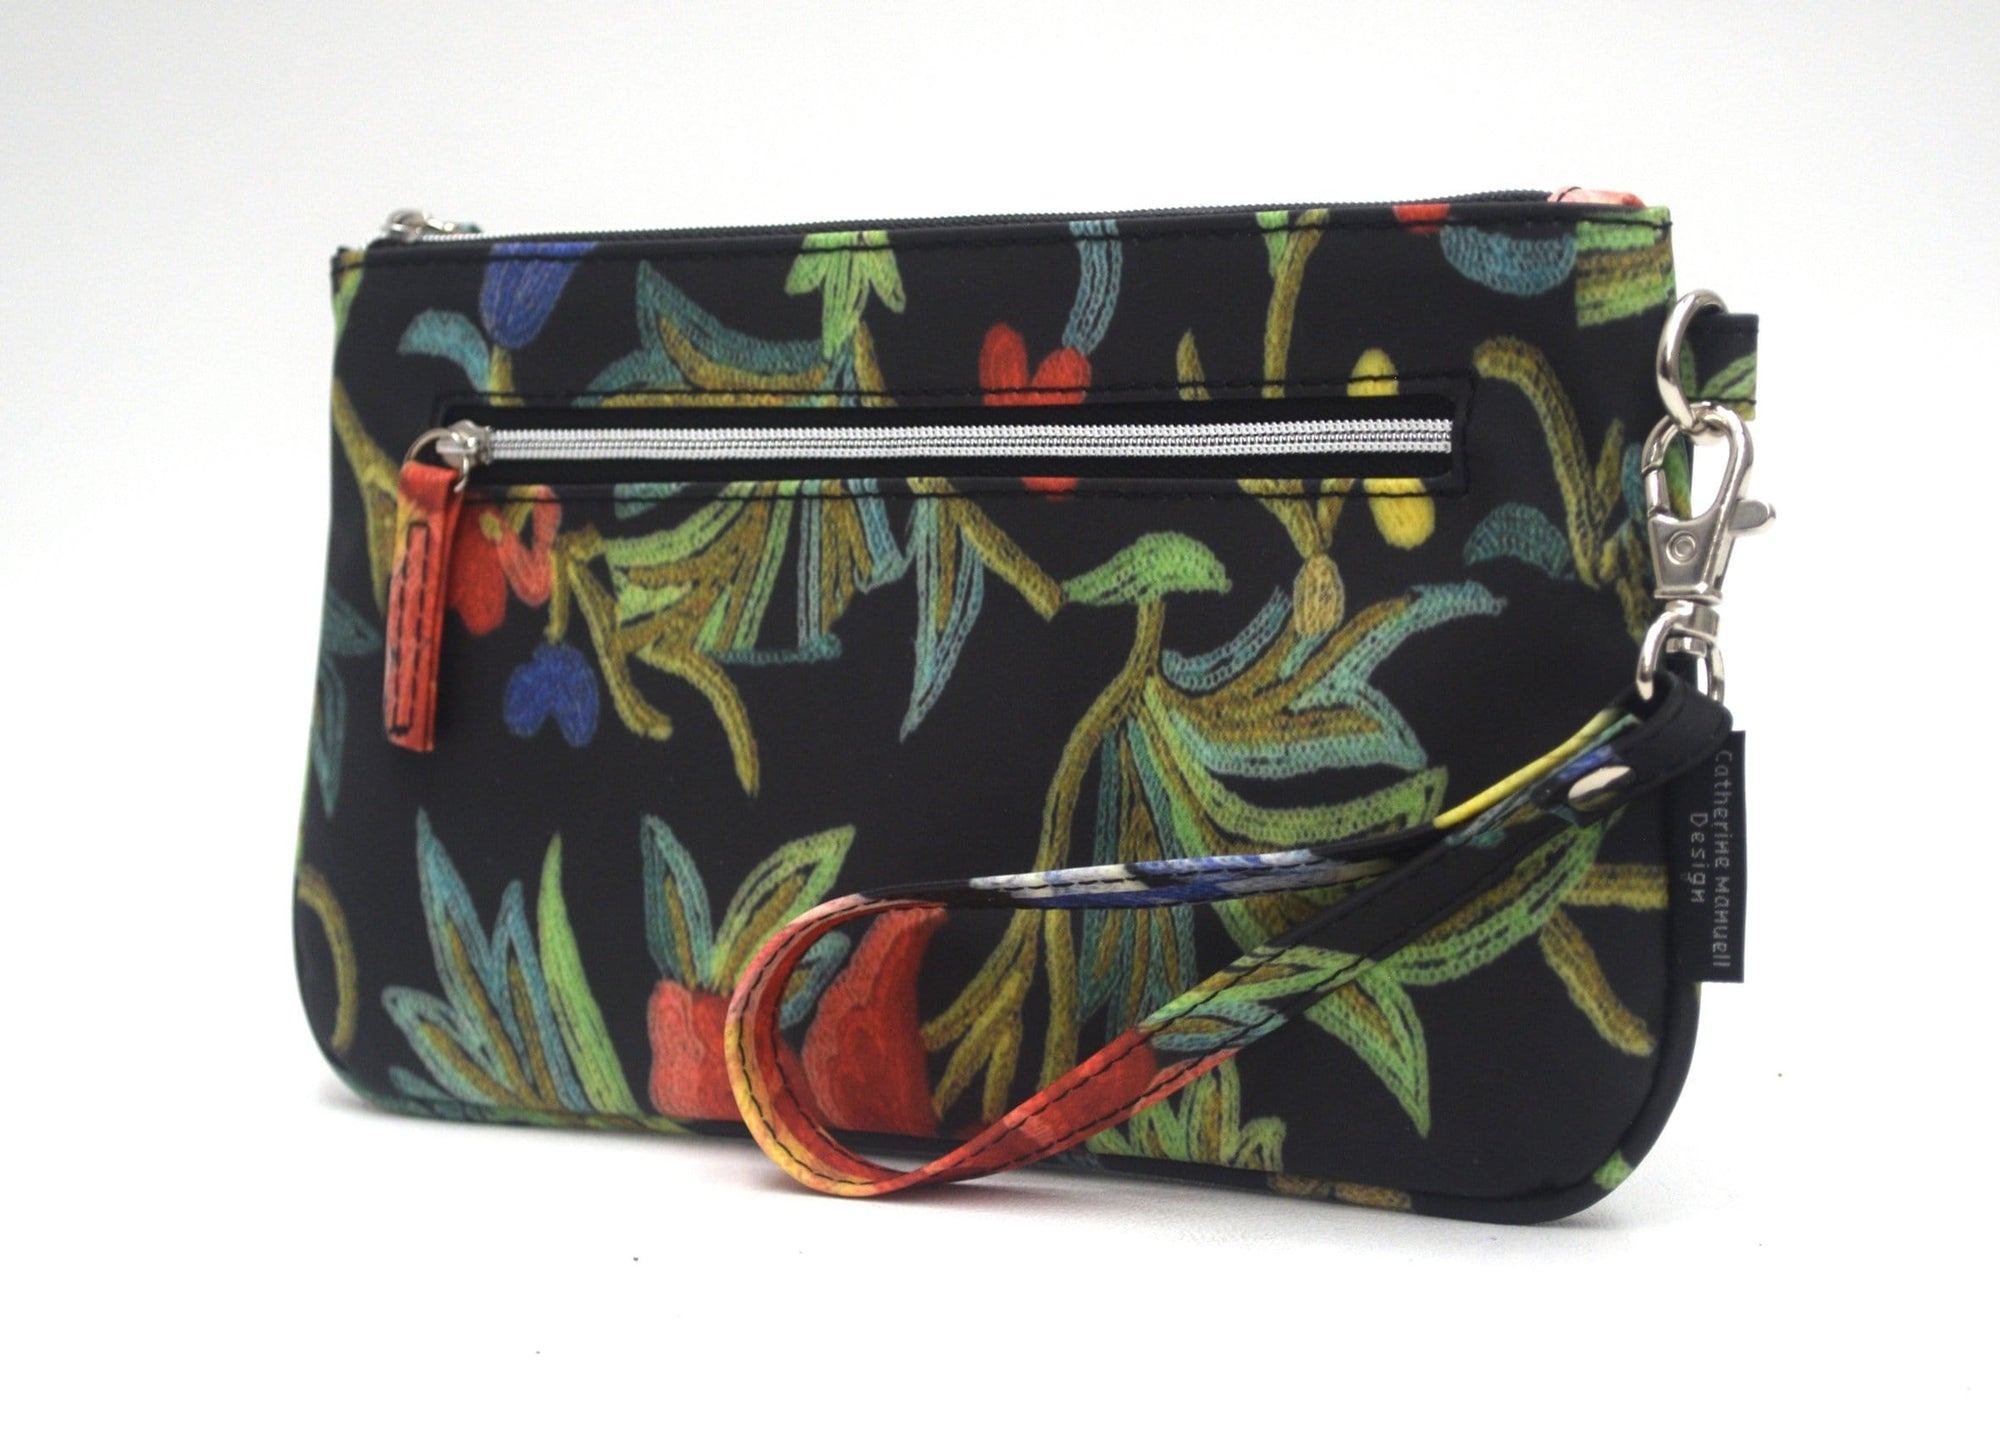 Clutch Wallet - Black Embroidered Look